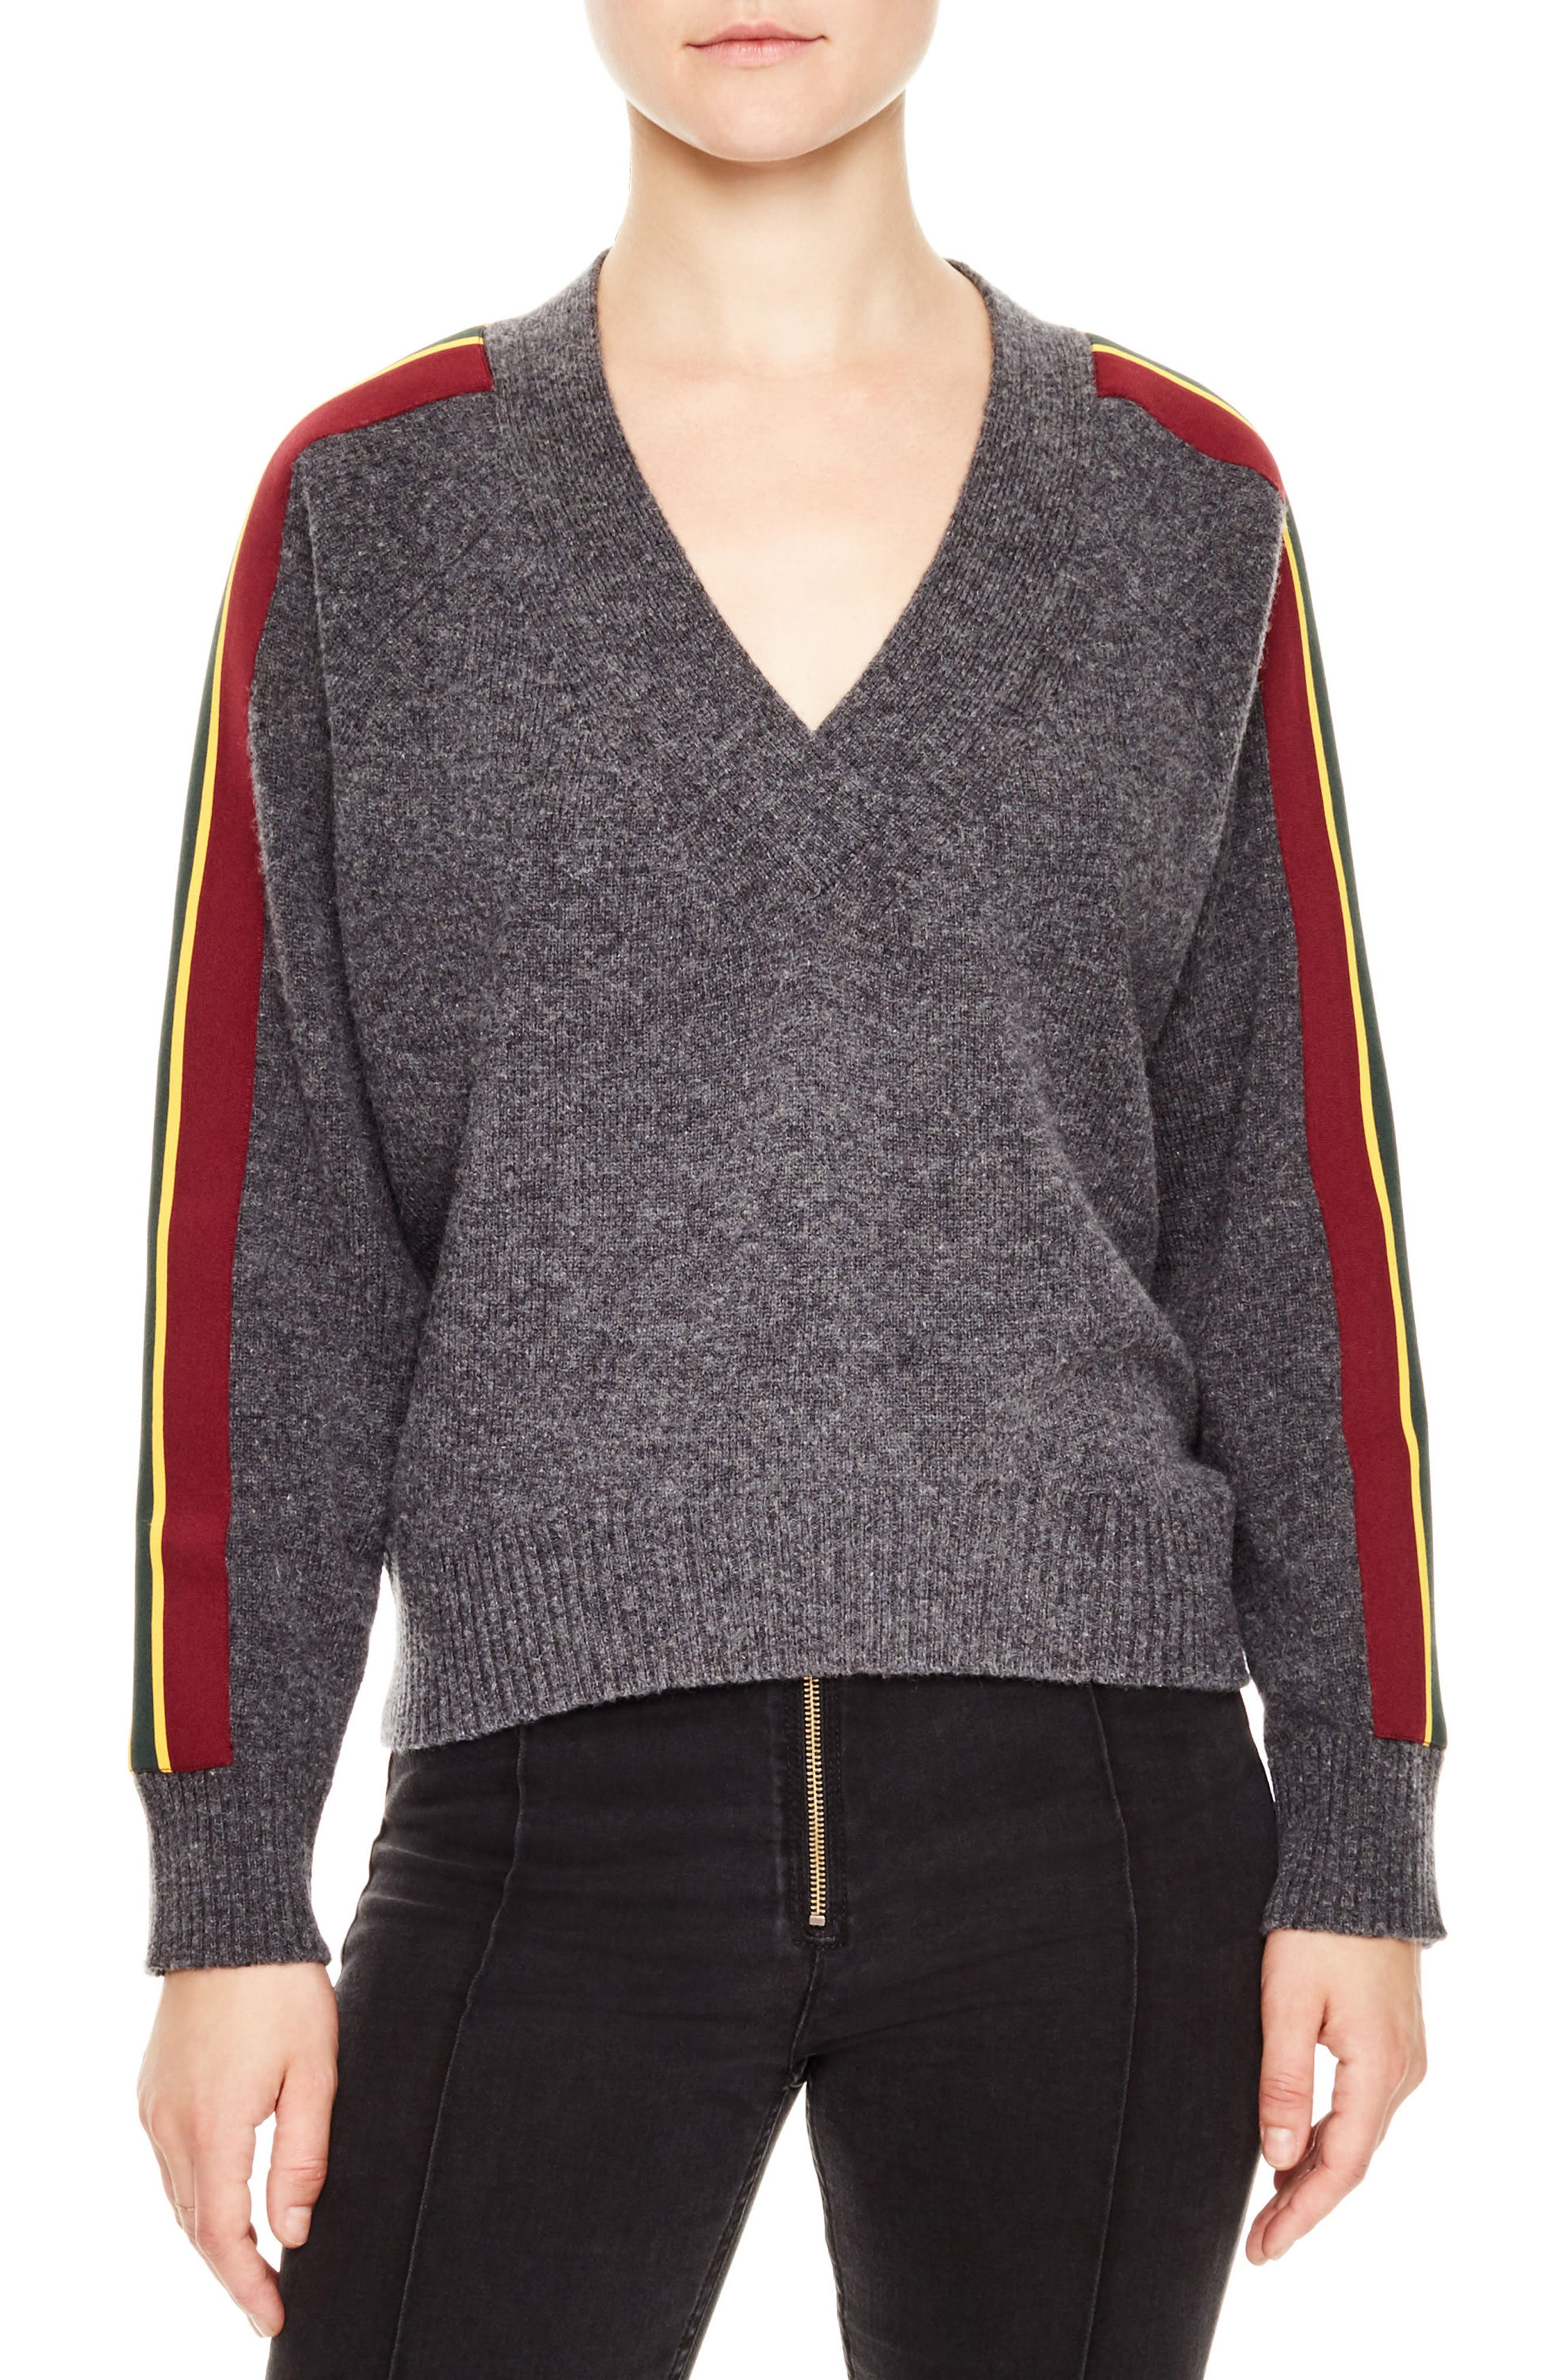 Artic Wool Blend Sweater,                         Main,                         color, Grey